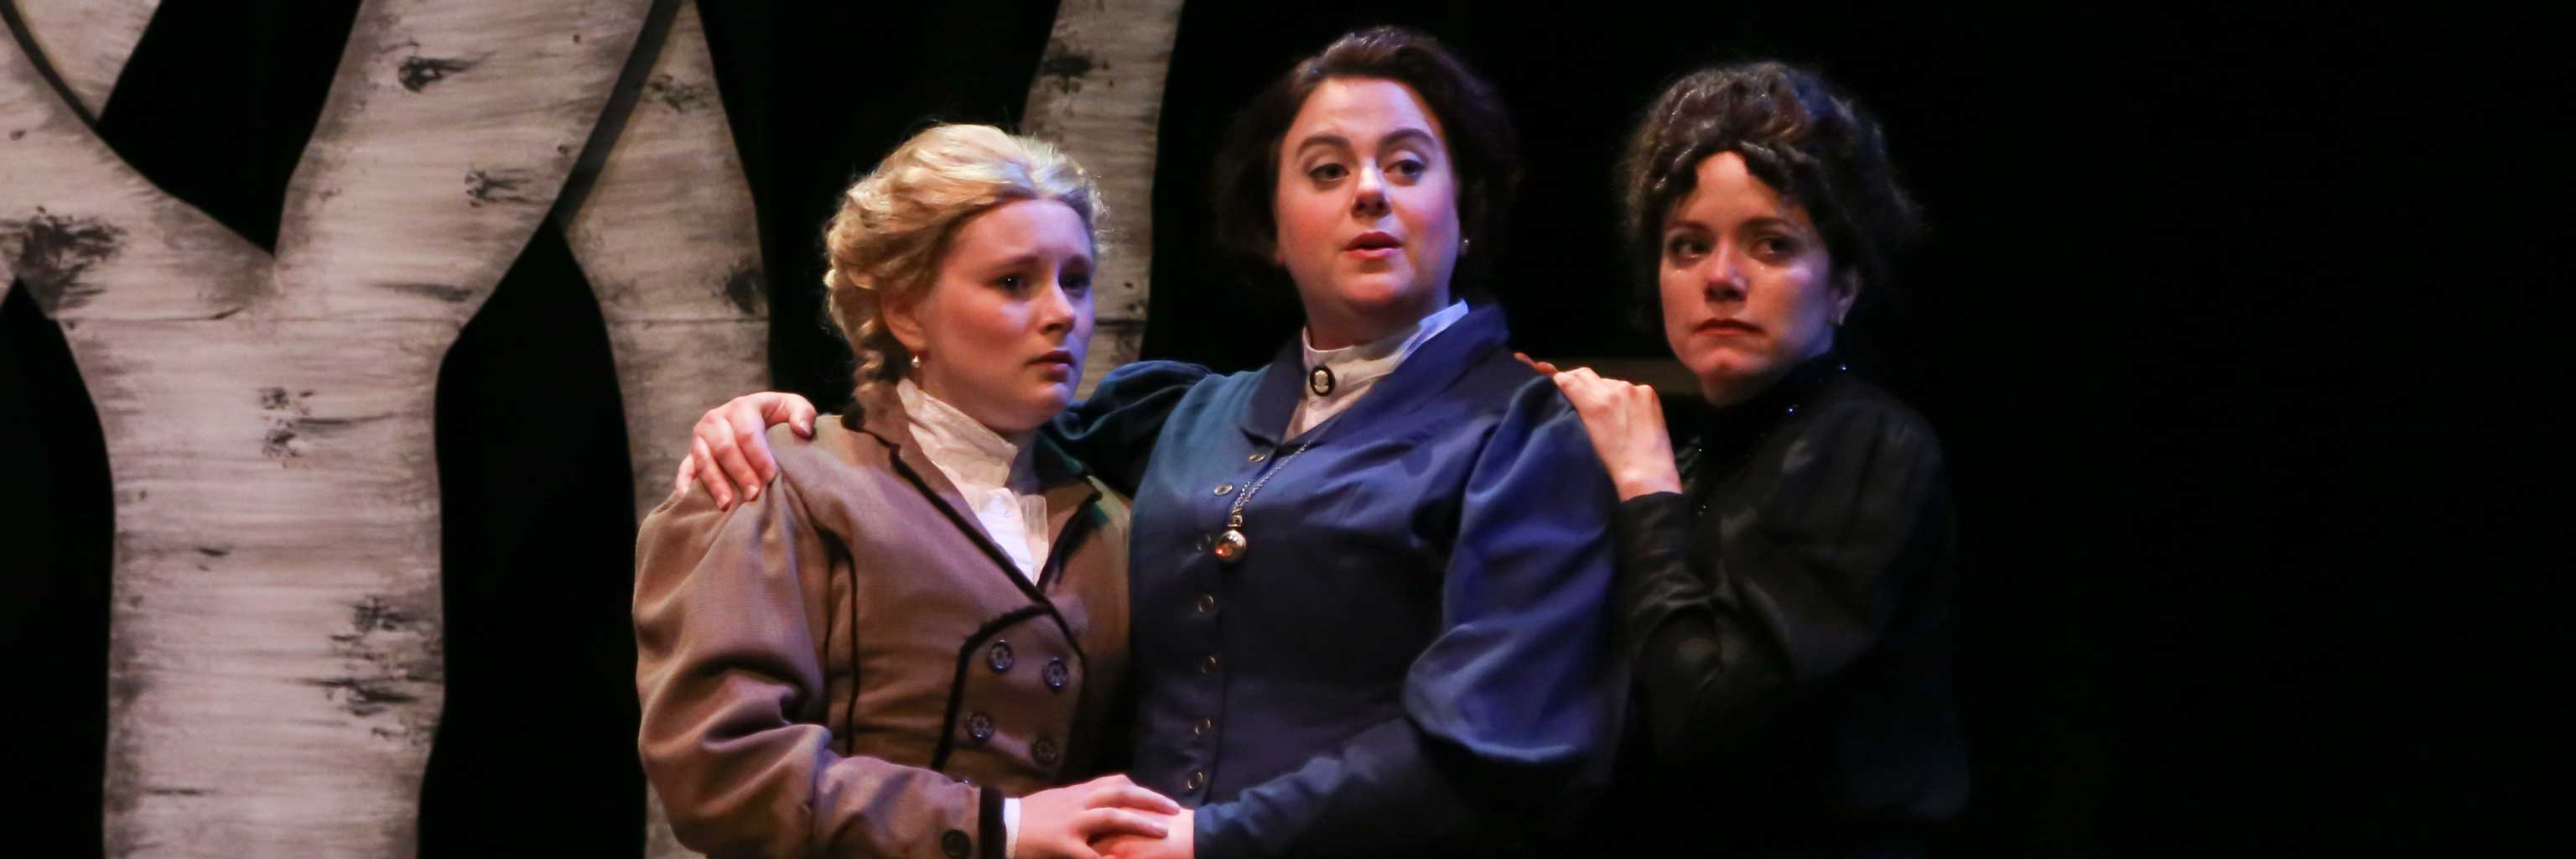 Scene from Three Sisters, featuring the three sisters.